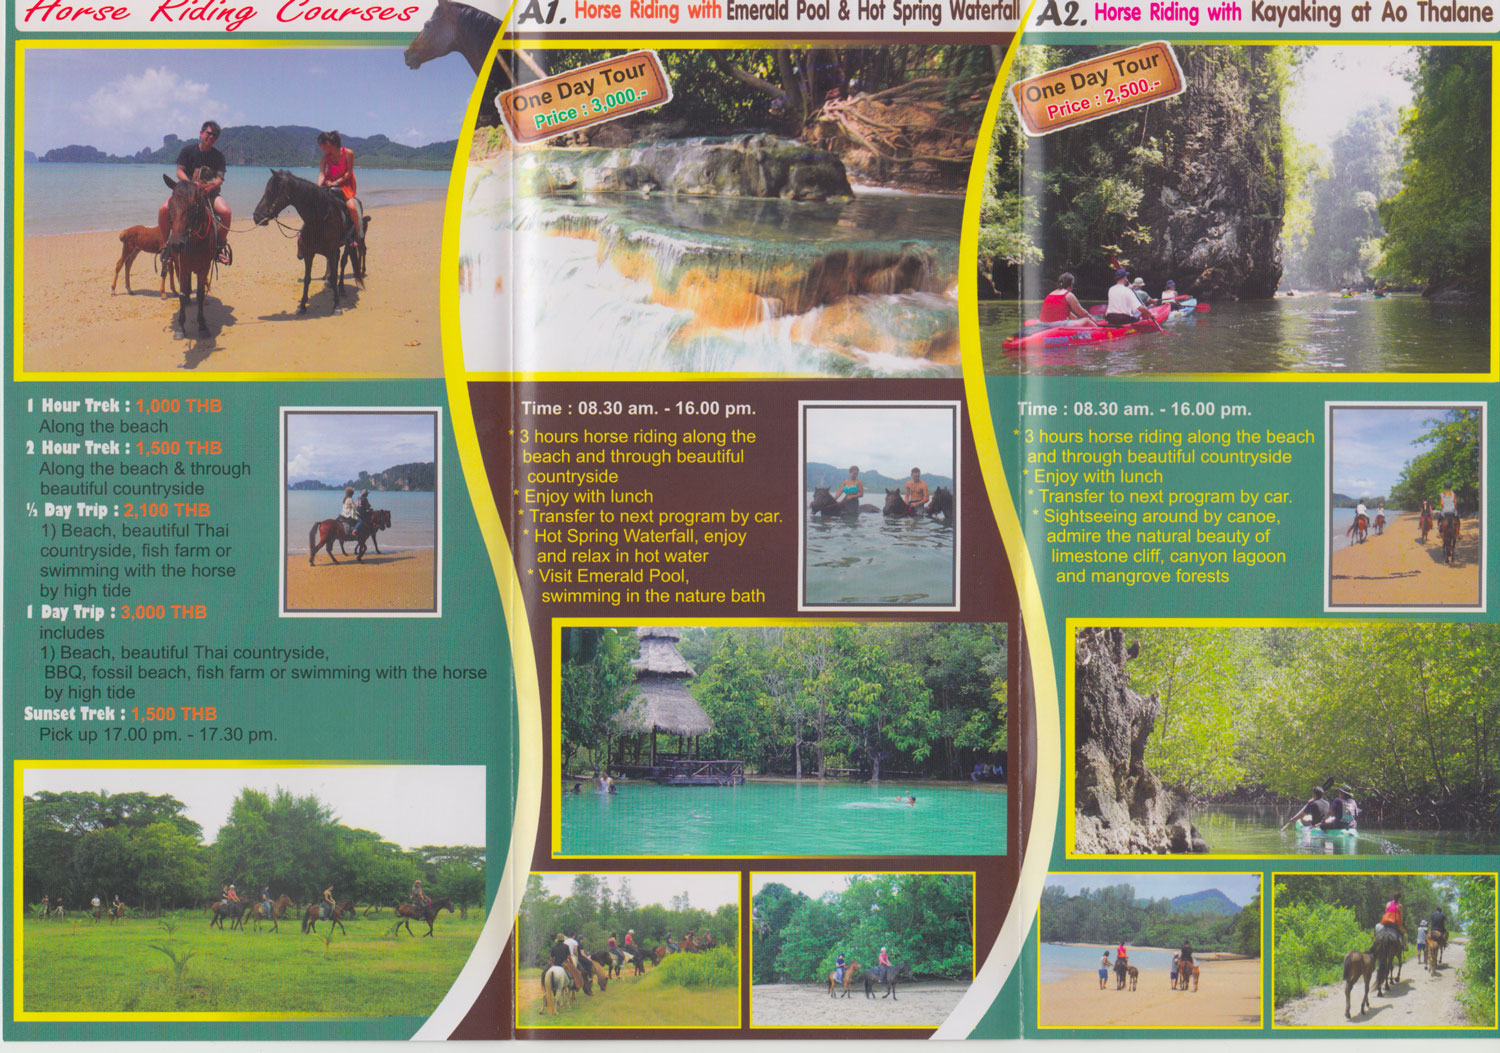 Horse riding in Krabi